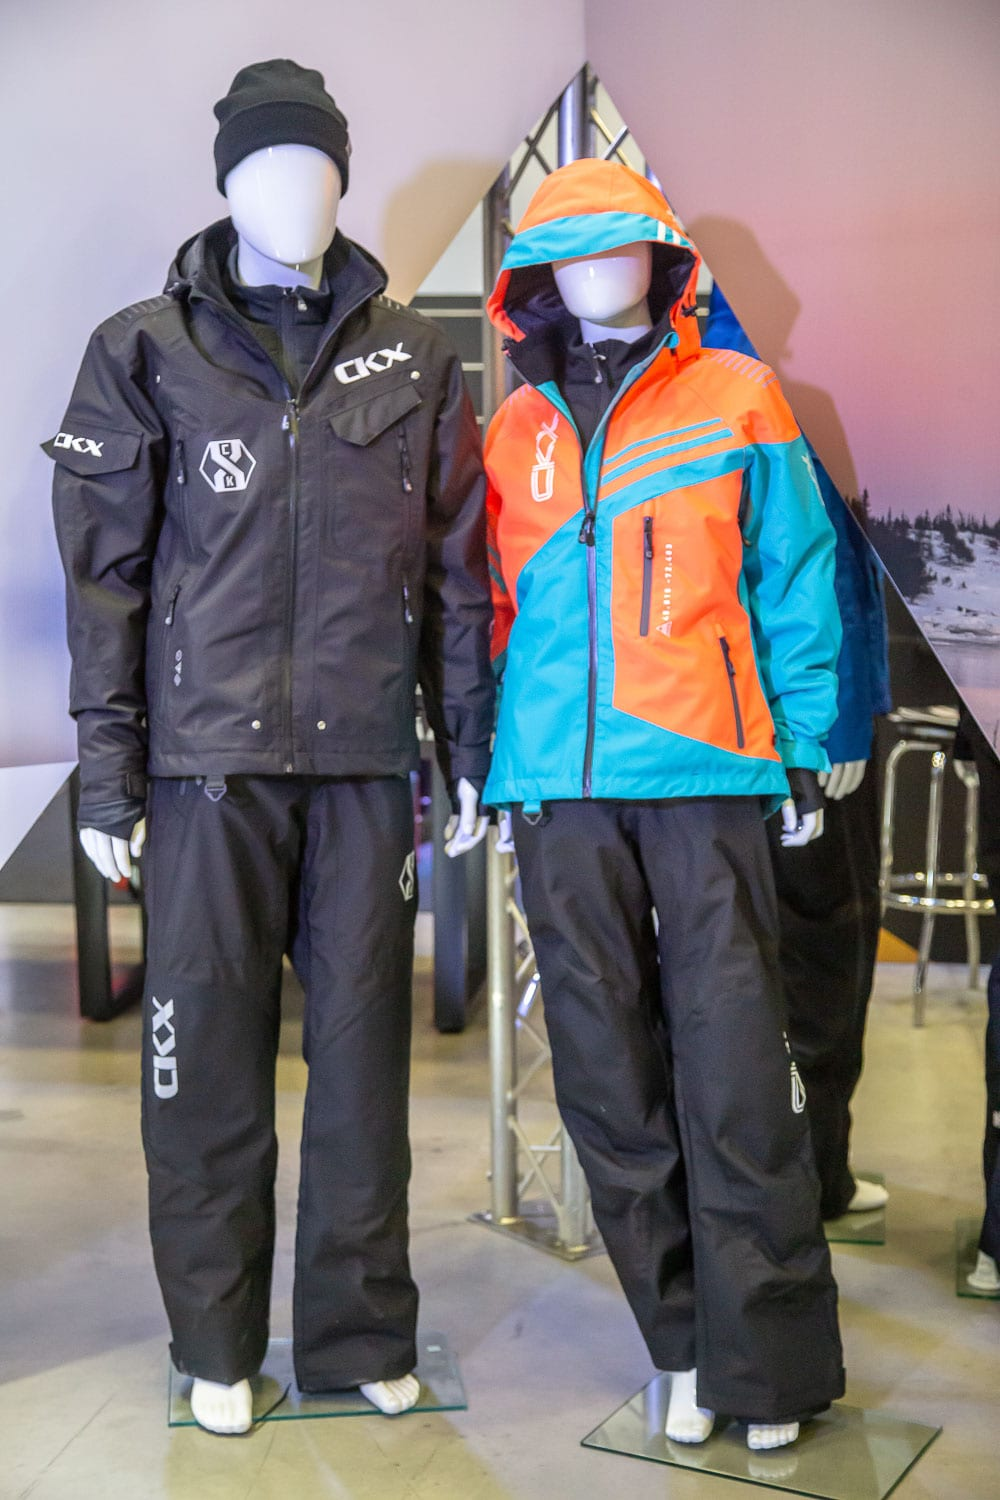 Experiment Winter with CKX